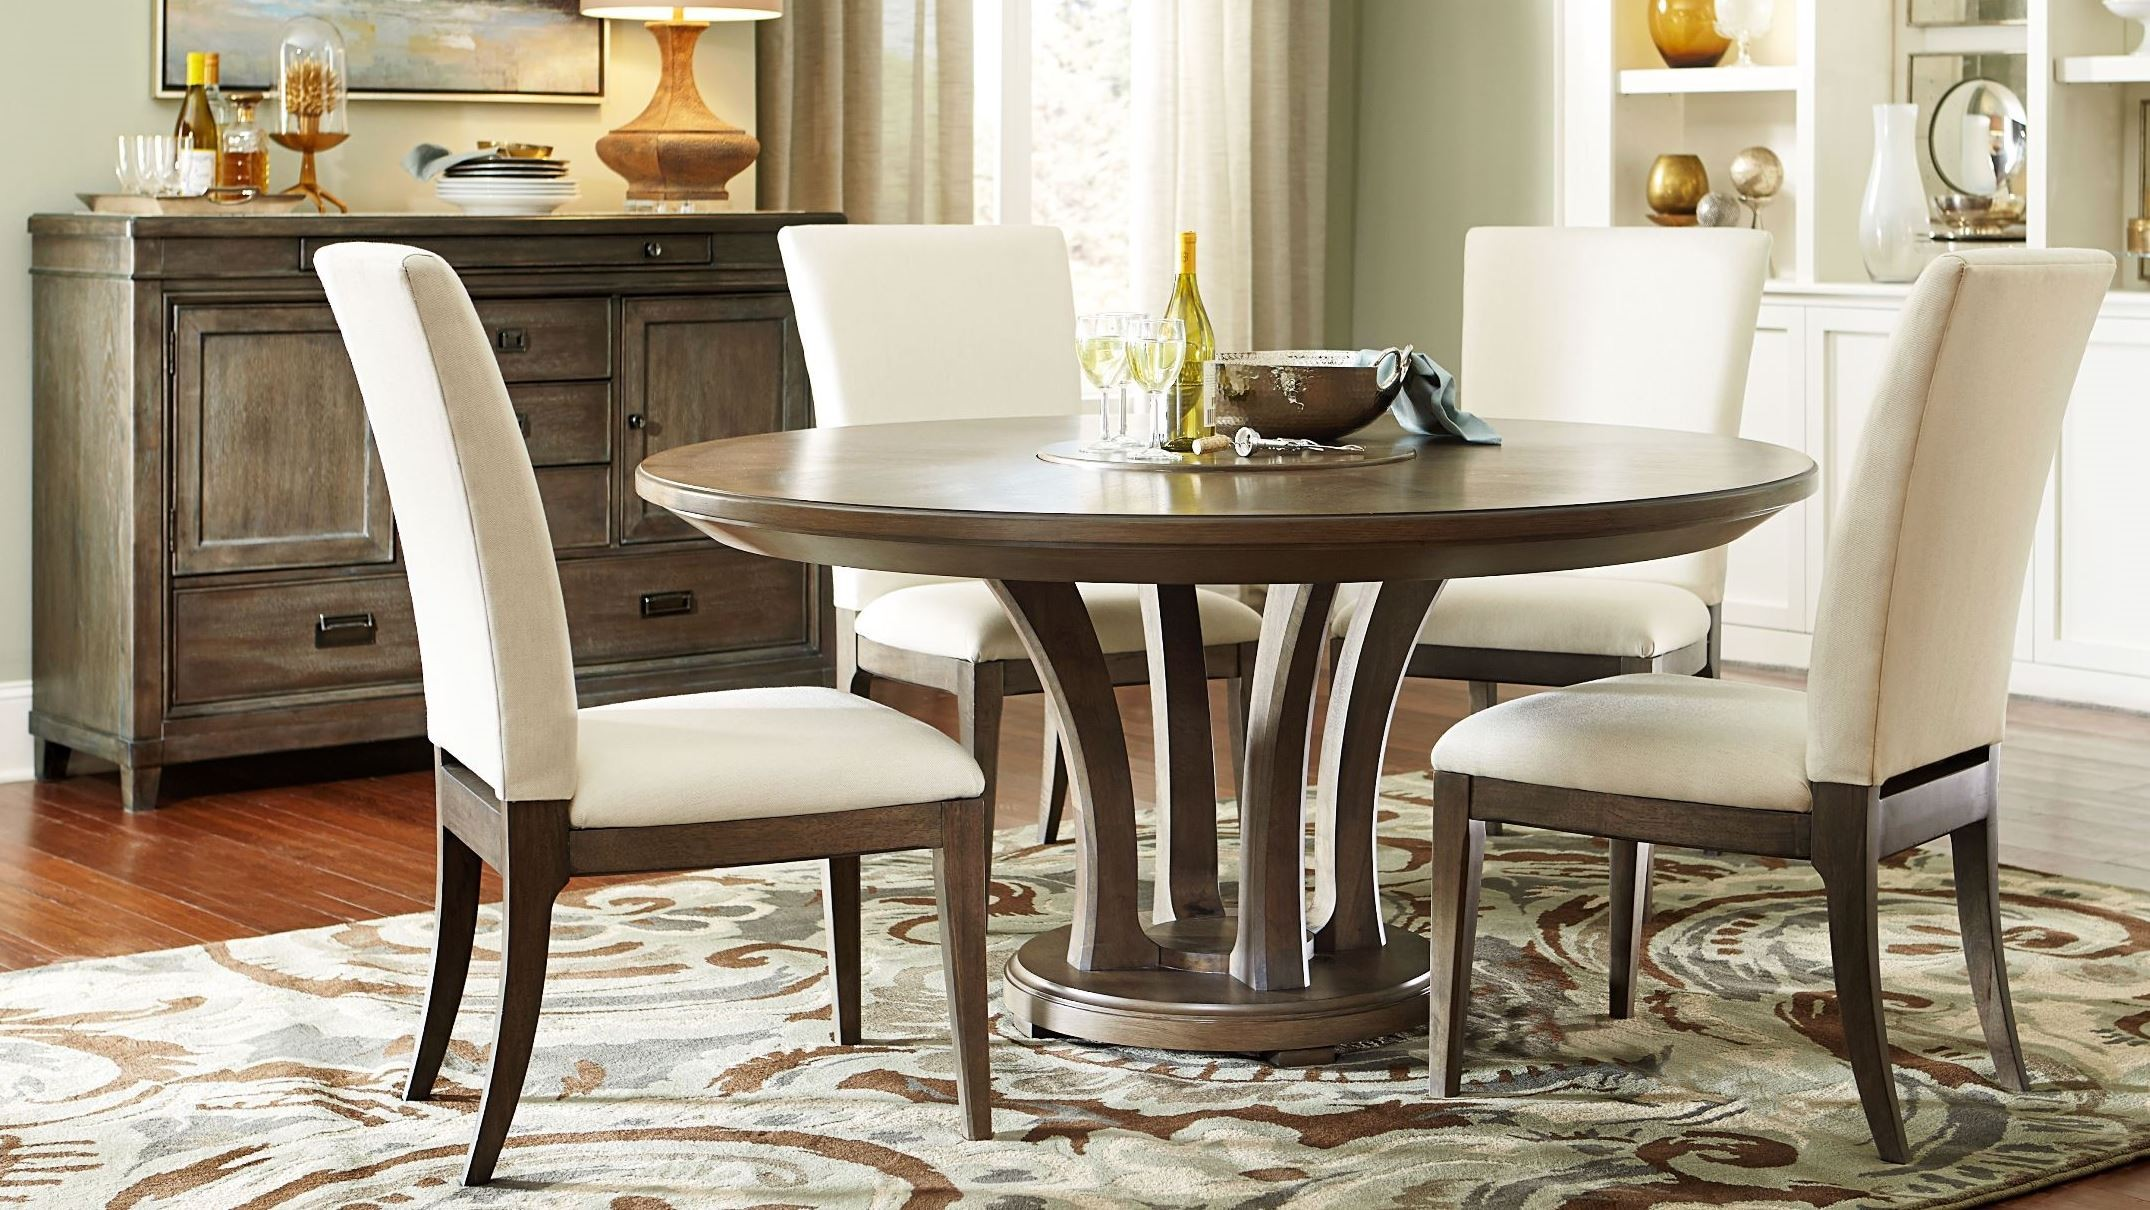 Park Studio Weathered Taupe 62 Quot Round Dining Room Set From